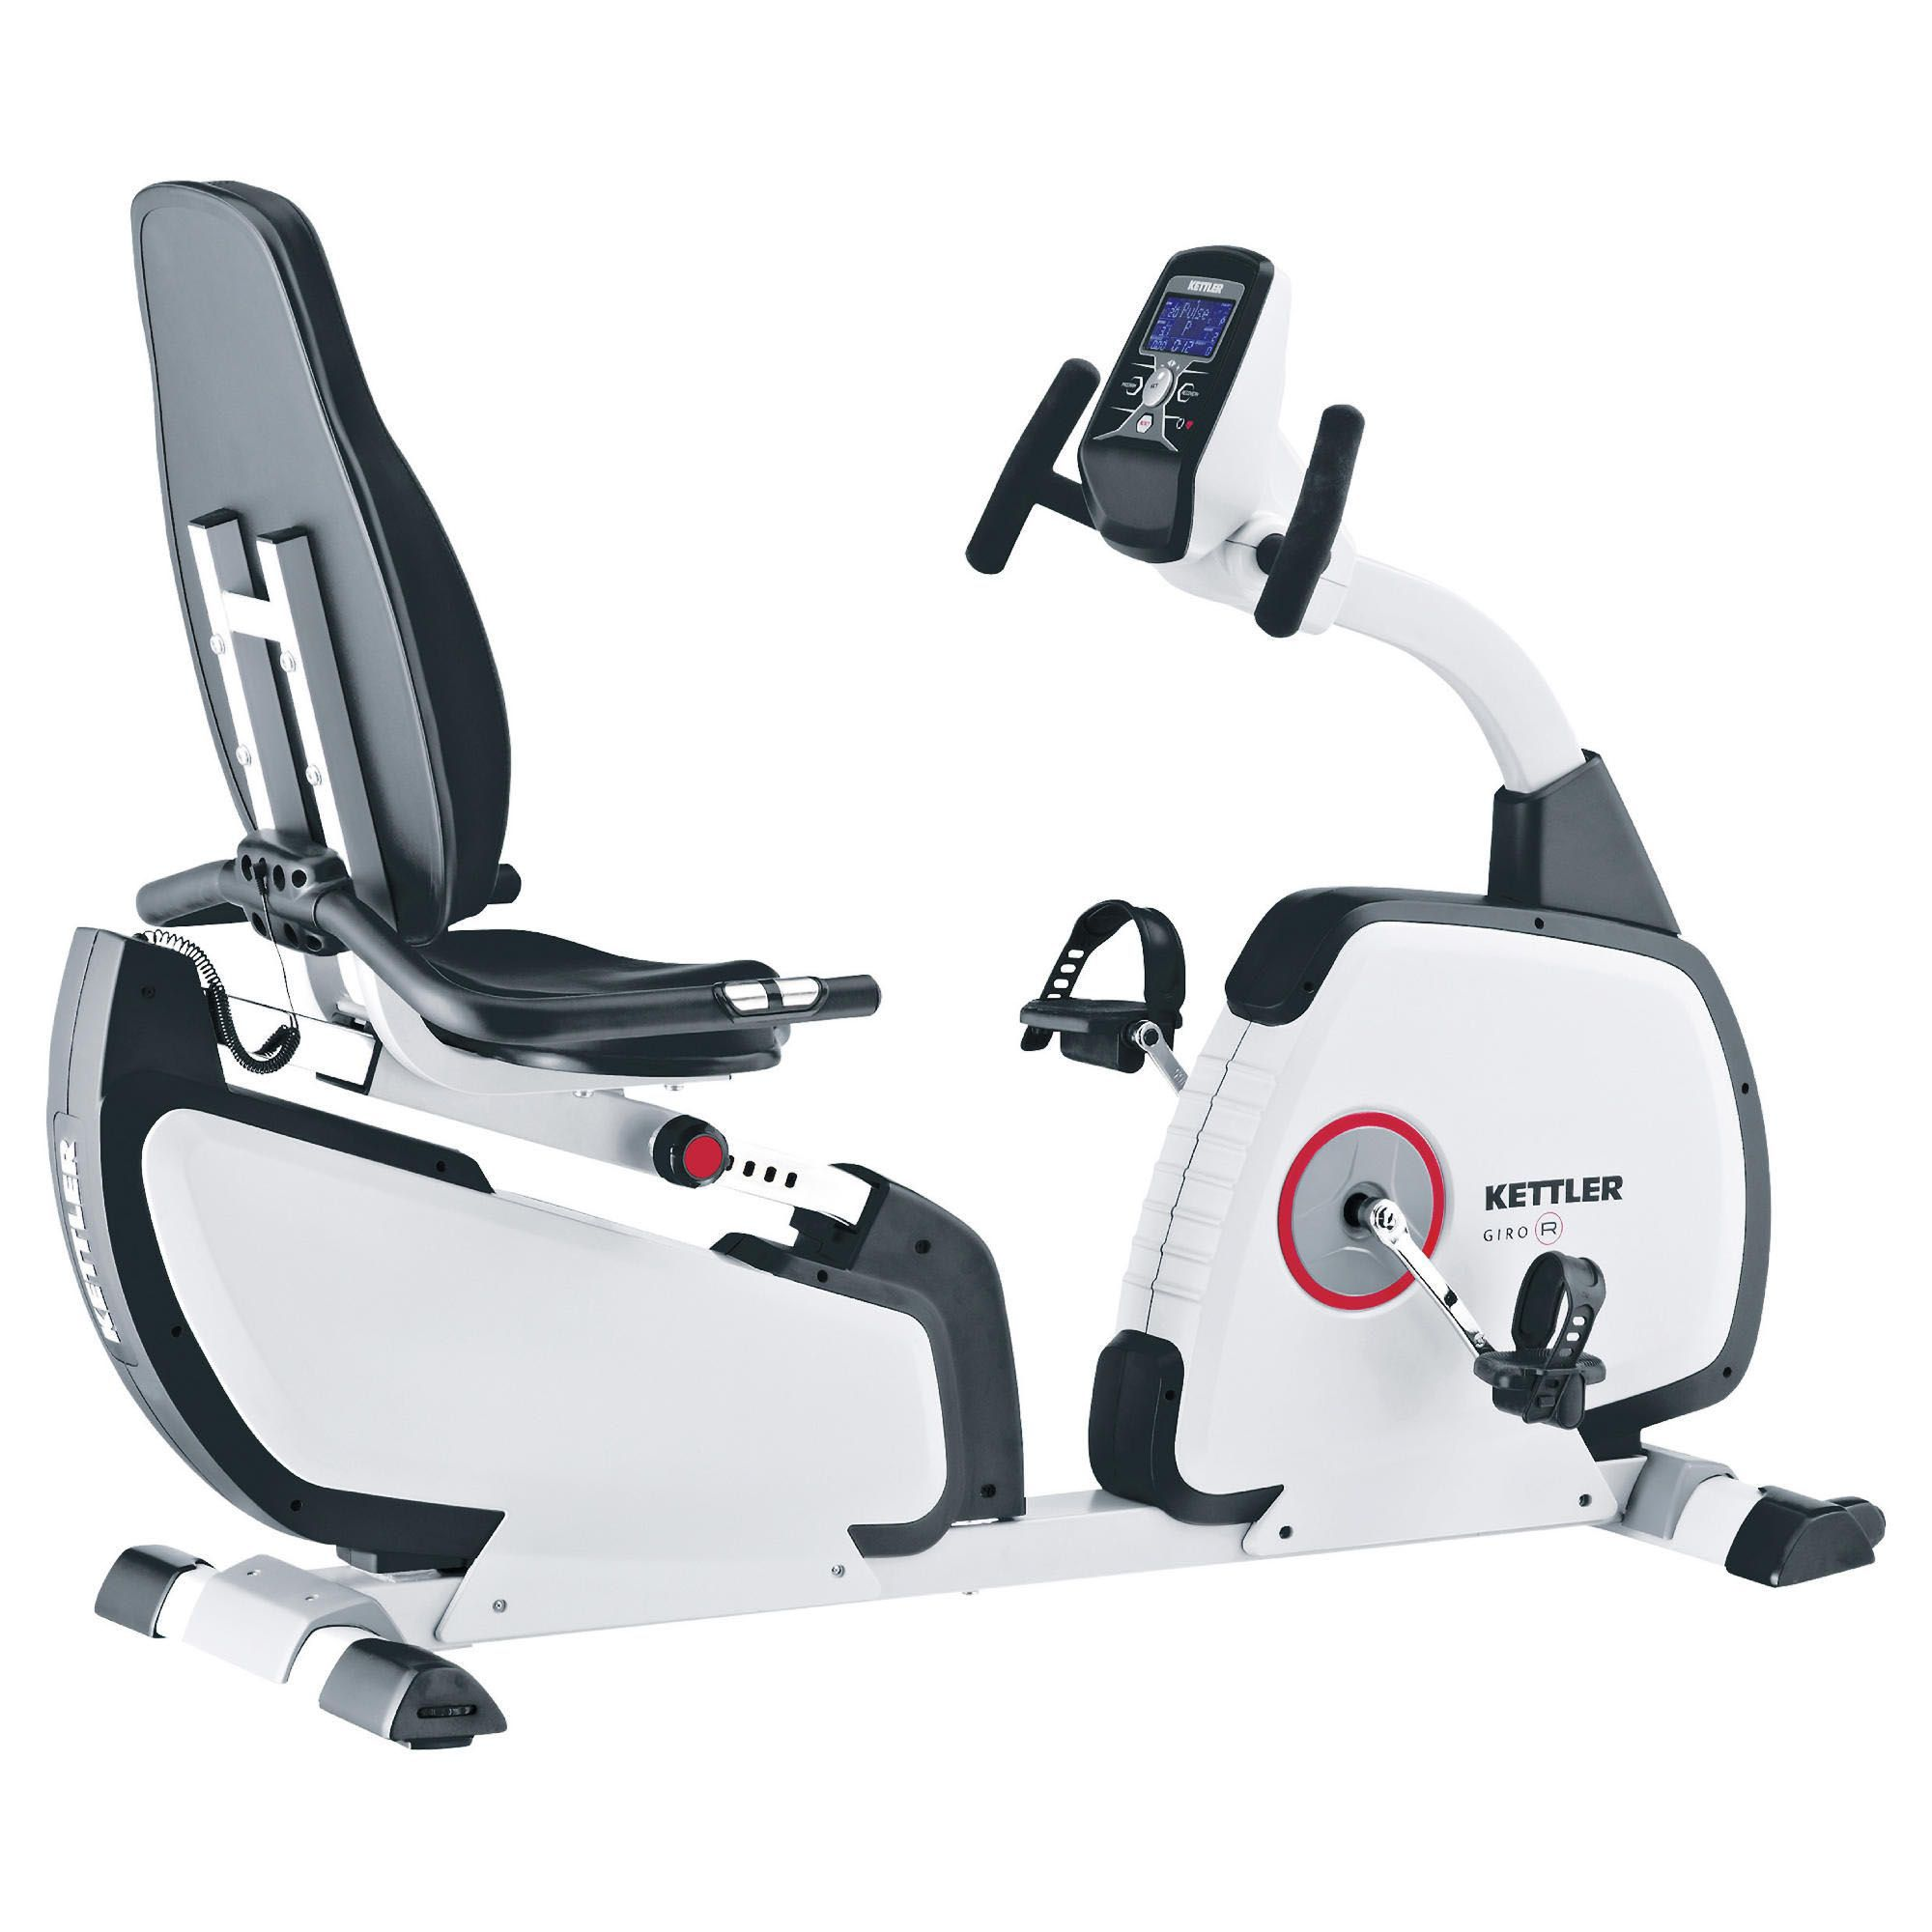 kettler giro r recumbent exercise bike. Black Bedroom Furniture Sets. Home Design Ideas